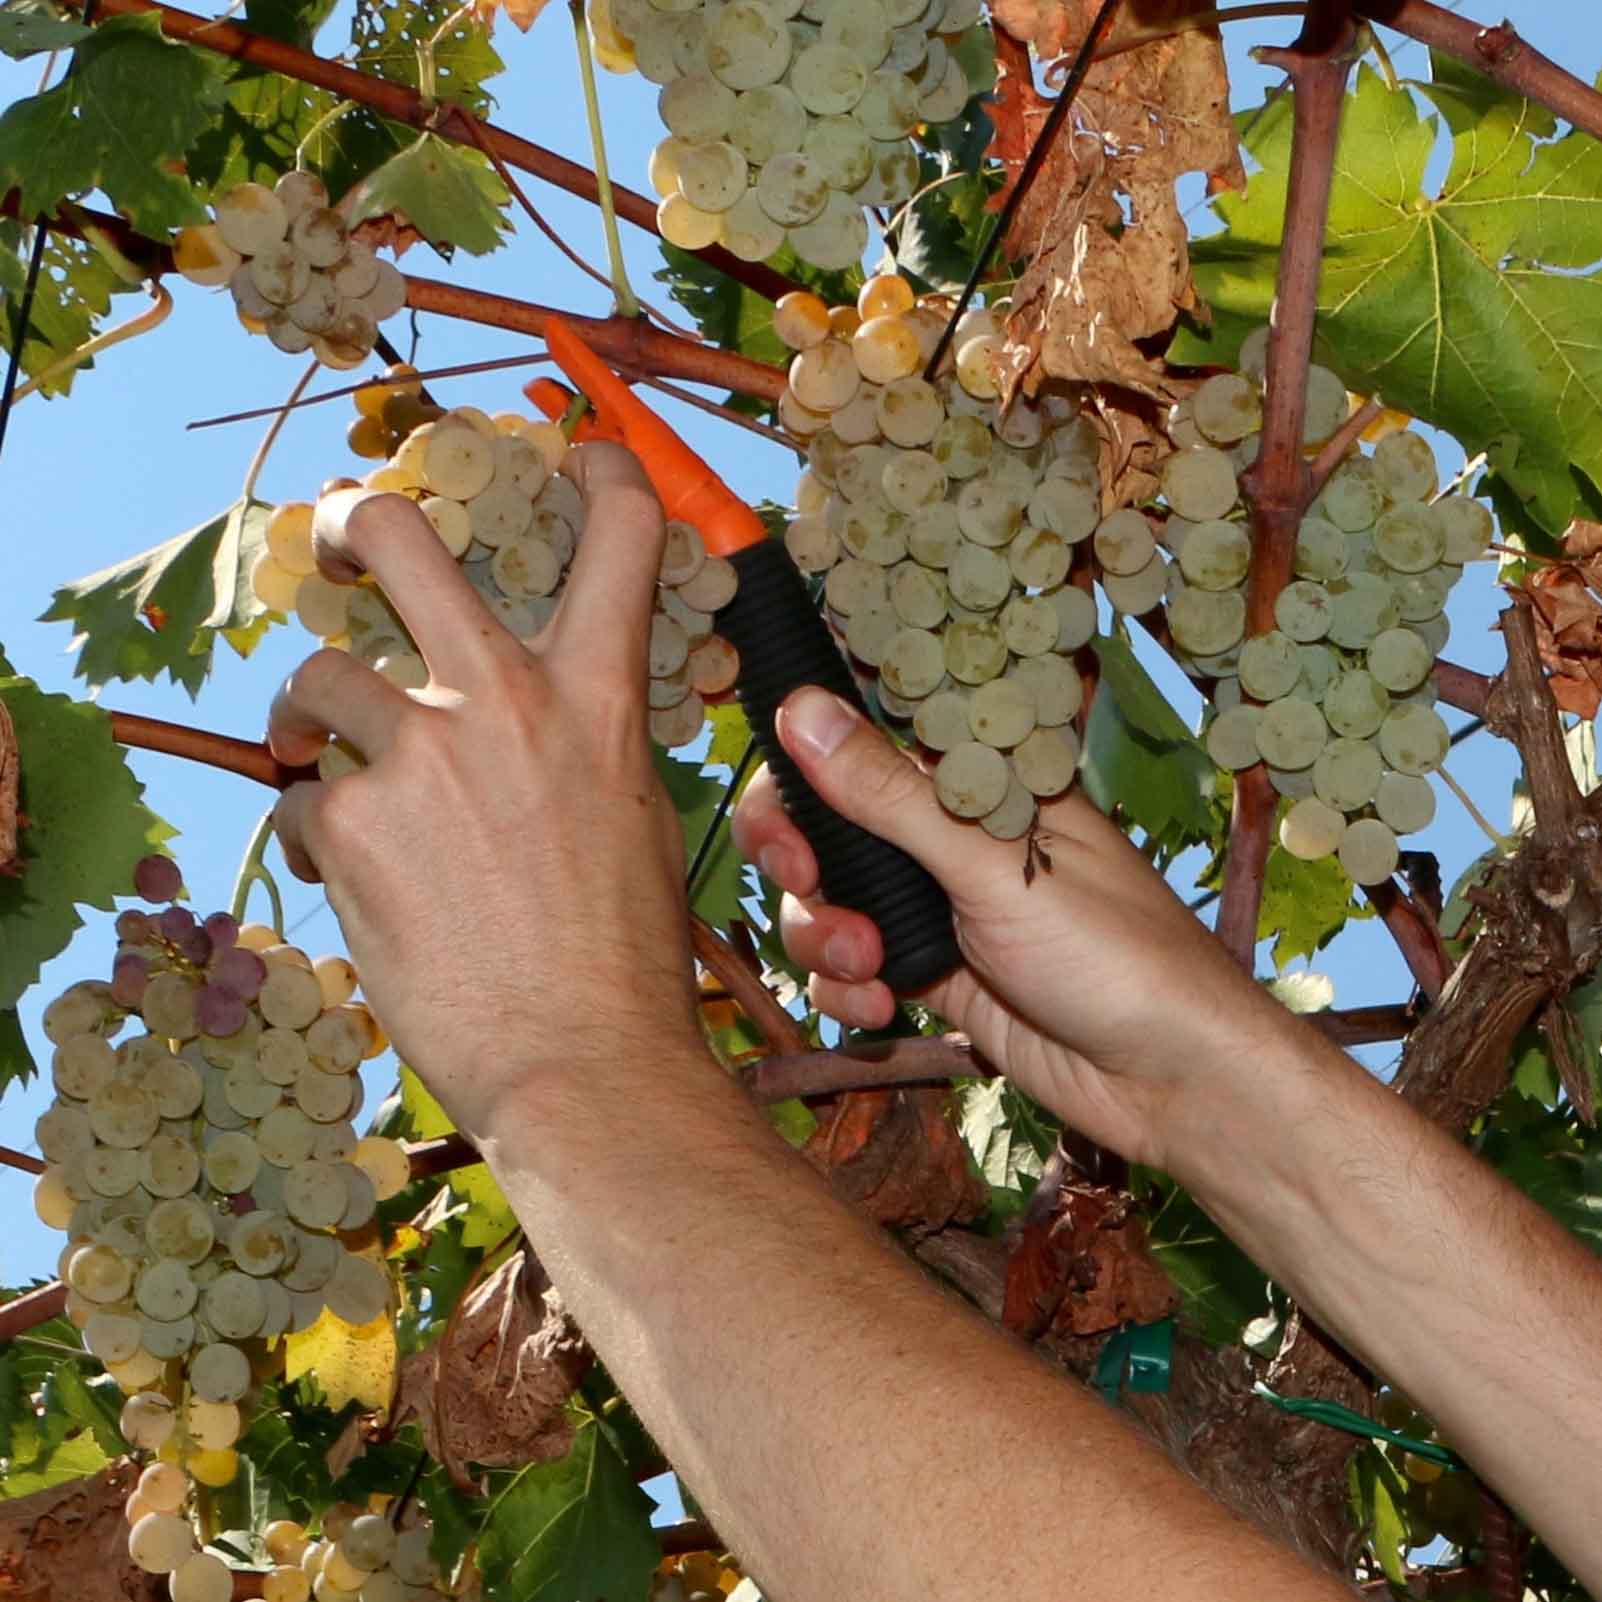 Jordan Burbage, of the UGA Soil, Plant and Water Analysis Laboratory in Athens, Georgia, harvests grapes at Trillium Vineyards, part of the collaborative research project being conducted by UGA Extension and Westover Vineyard Consulting.